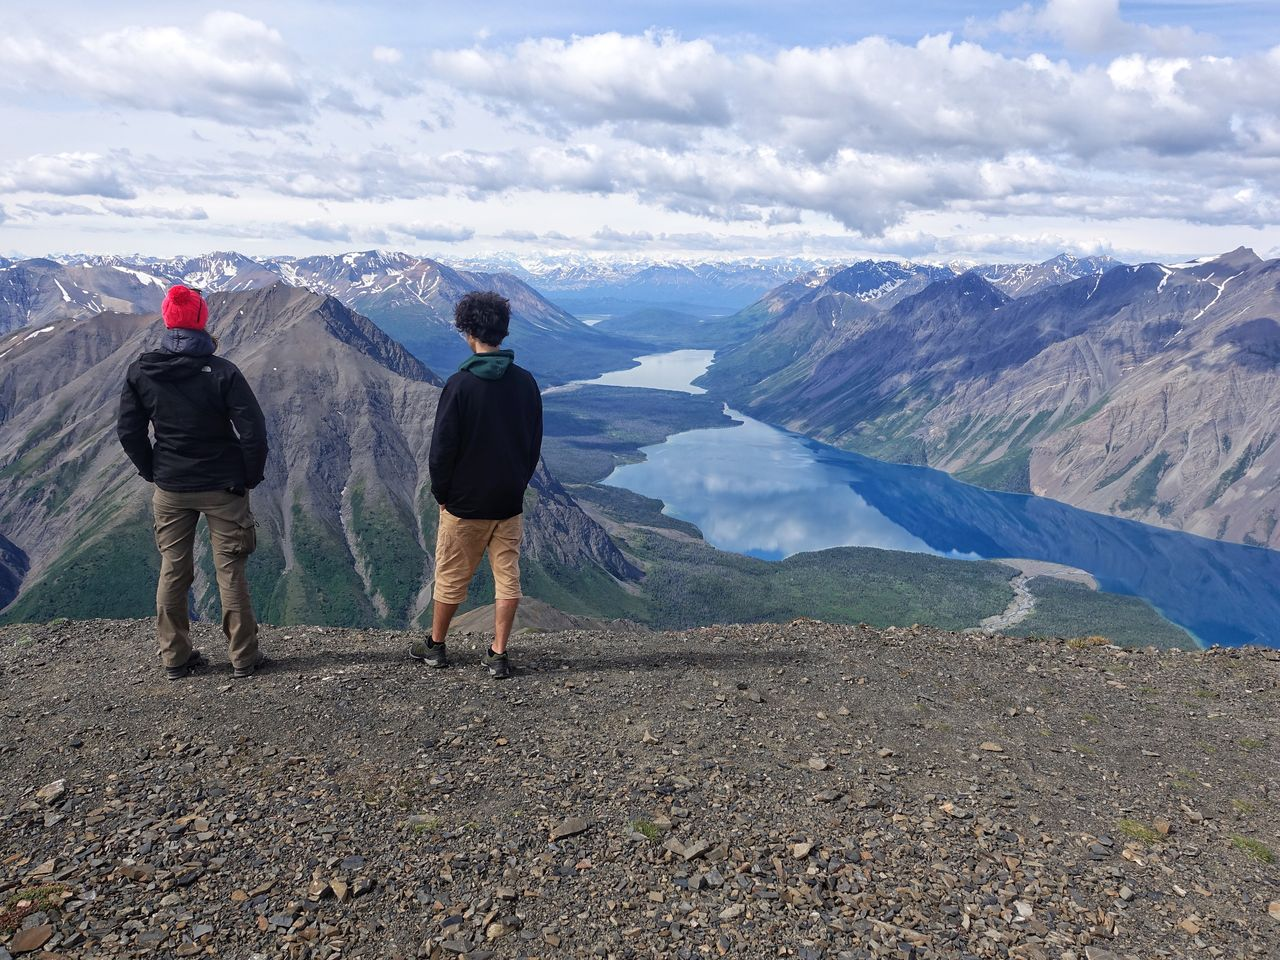 Rear View Of Friends Standing On Mountain Against Valley